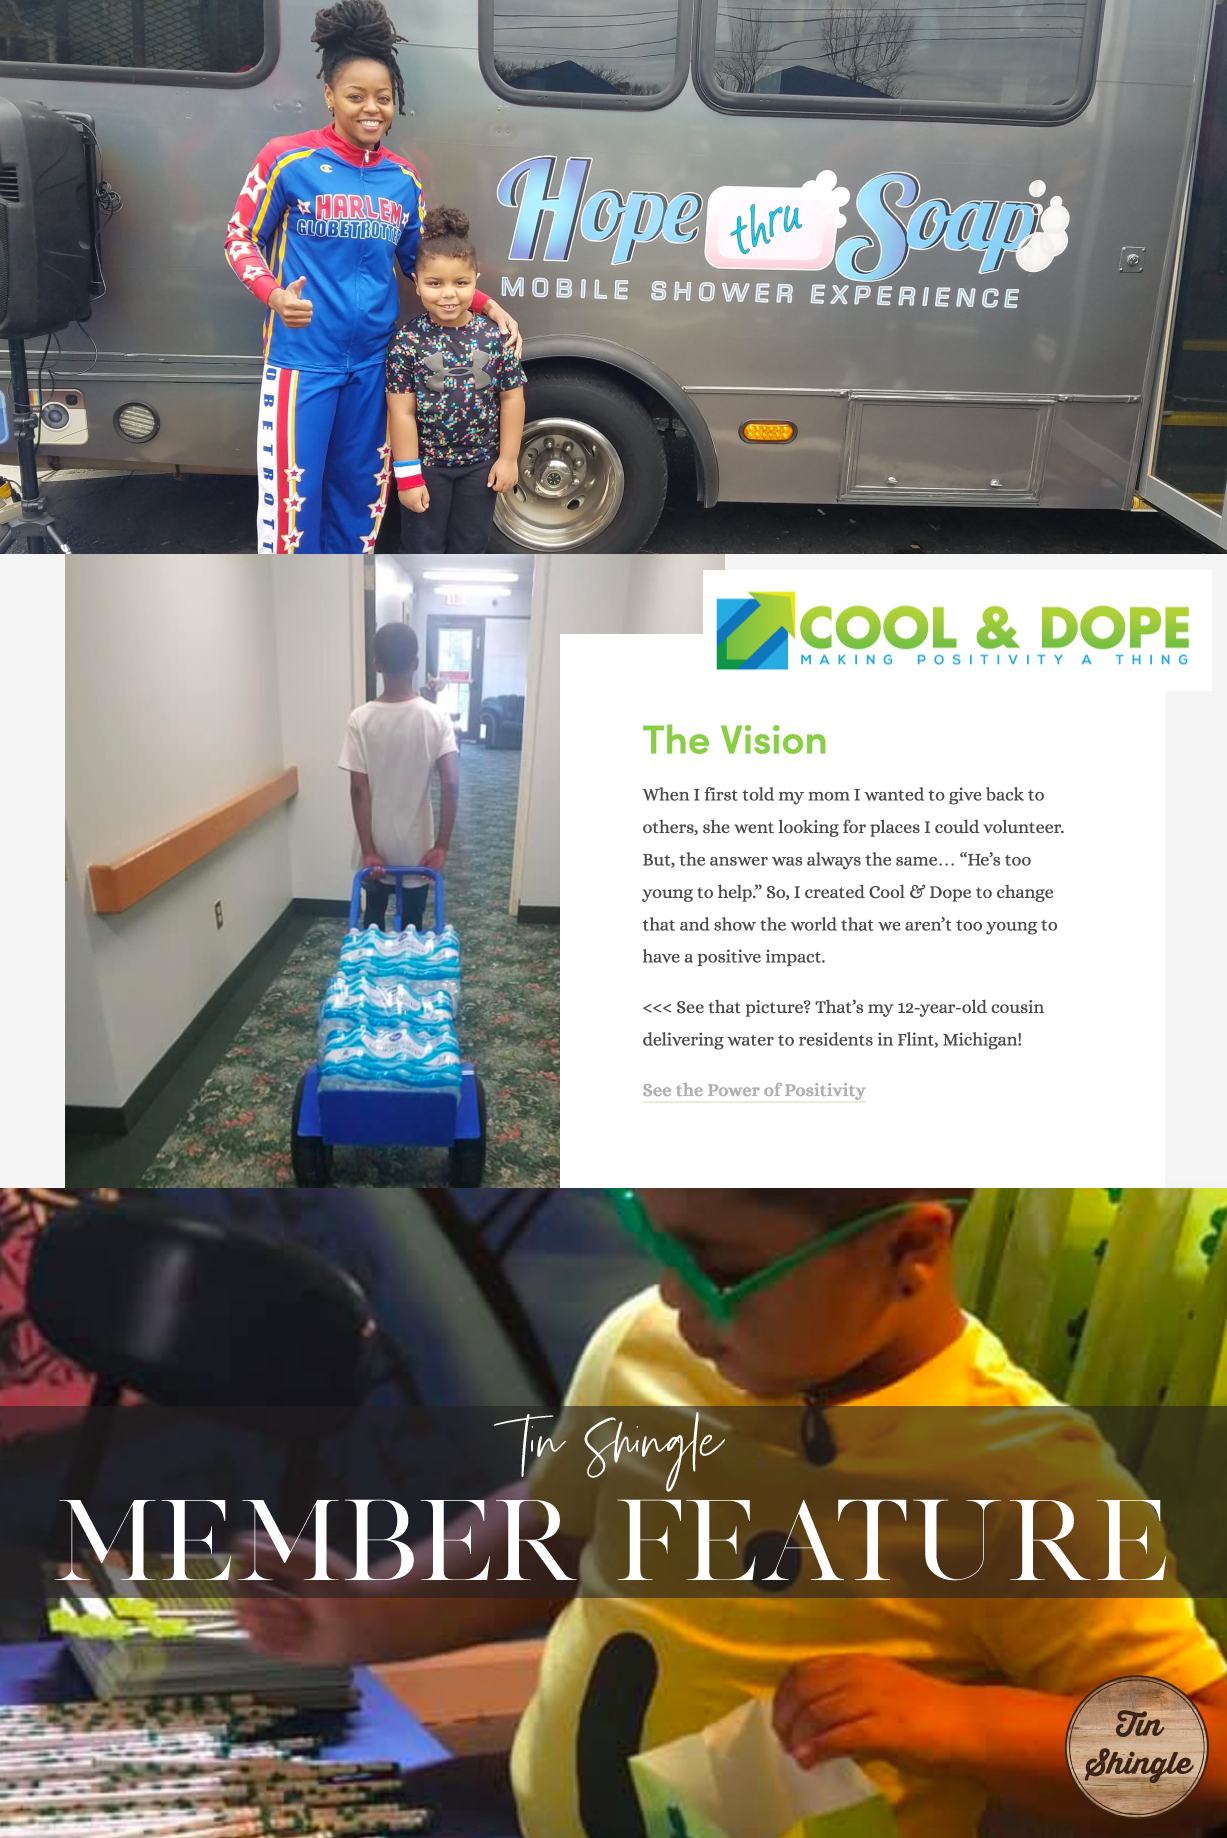 coolanddope-member-feature.png